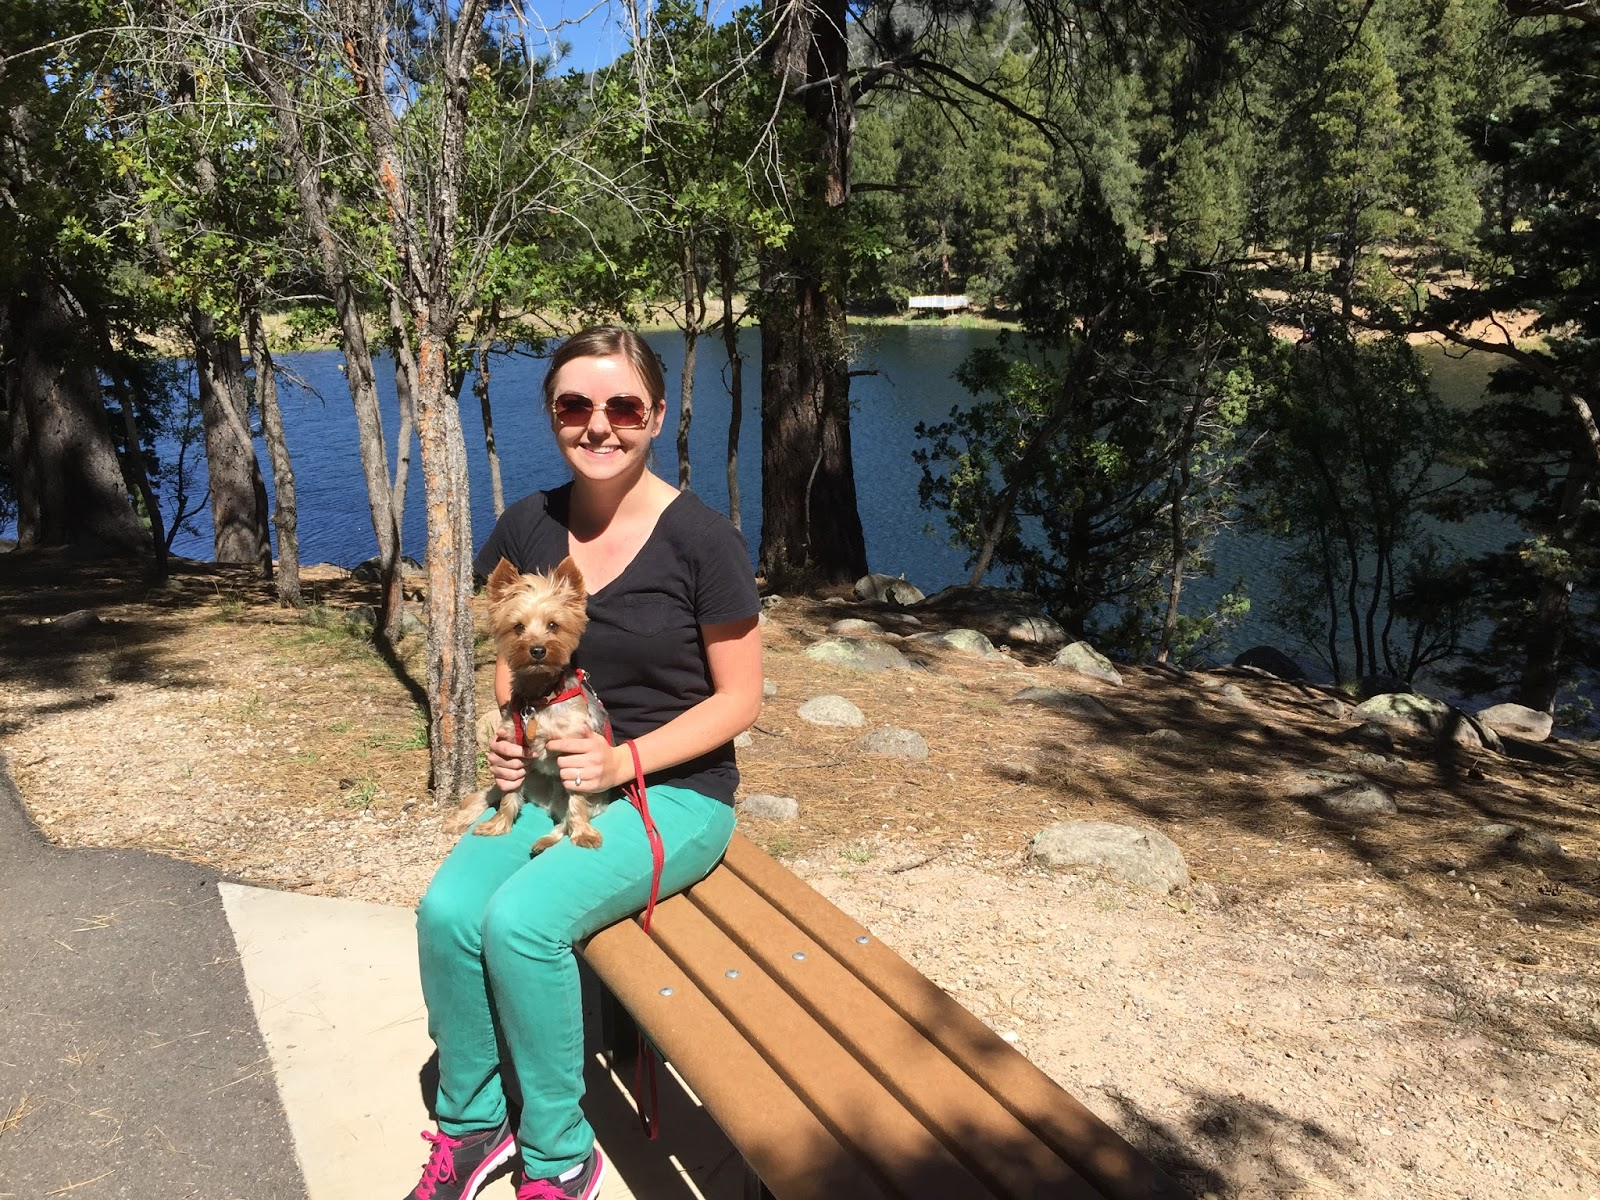 Southern Utah Attractions: Pine Valley: Dixie National Forest